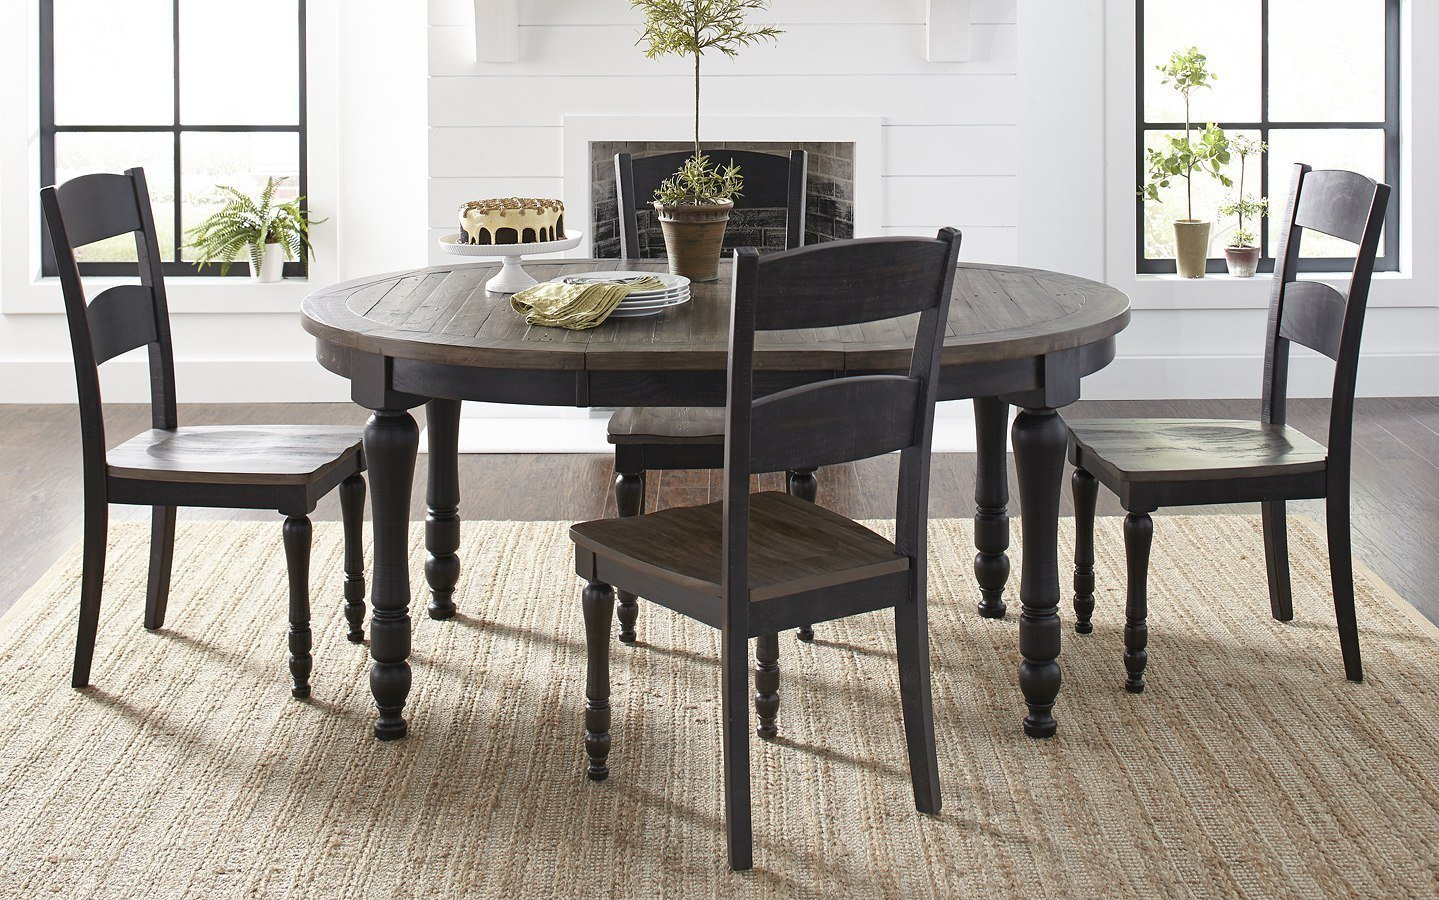 Oval Dining Room, Oval Dining Room Set